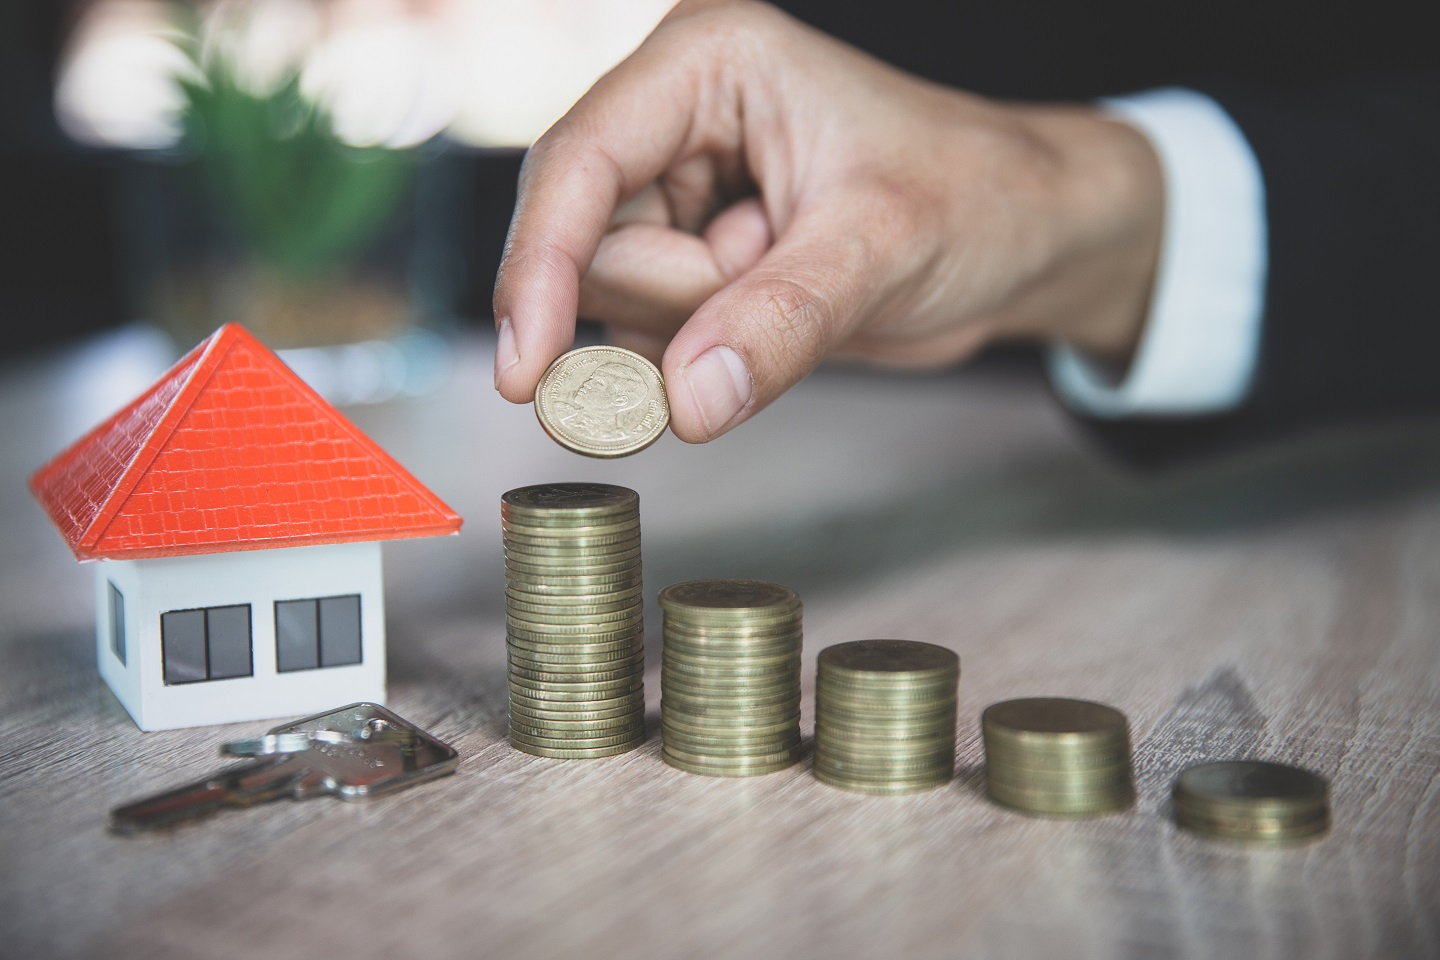 Getting a mortgage to buy your property